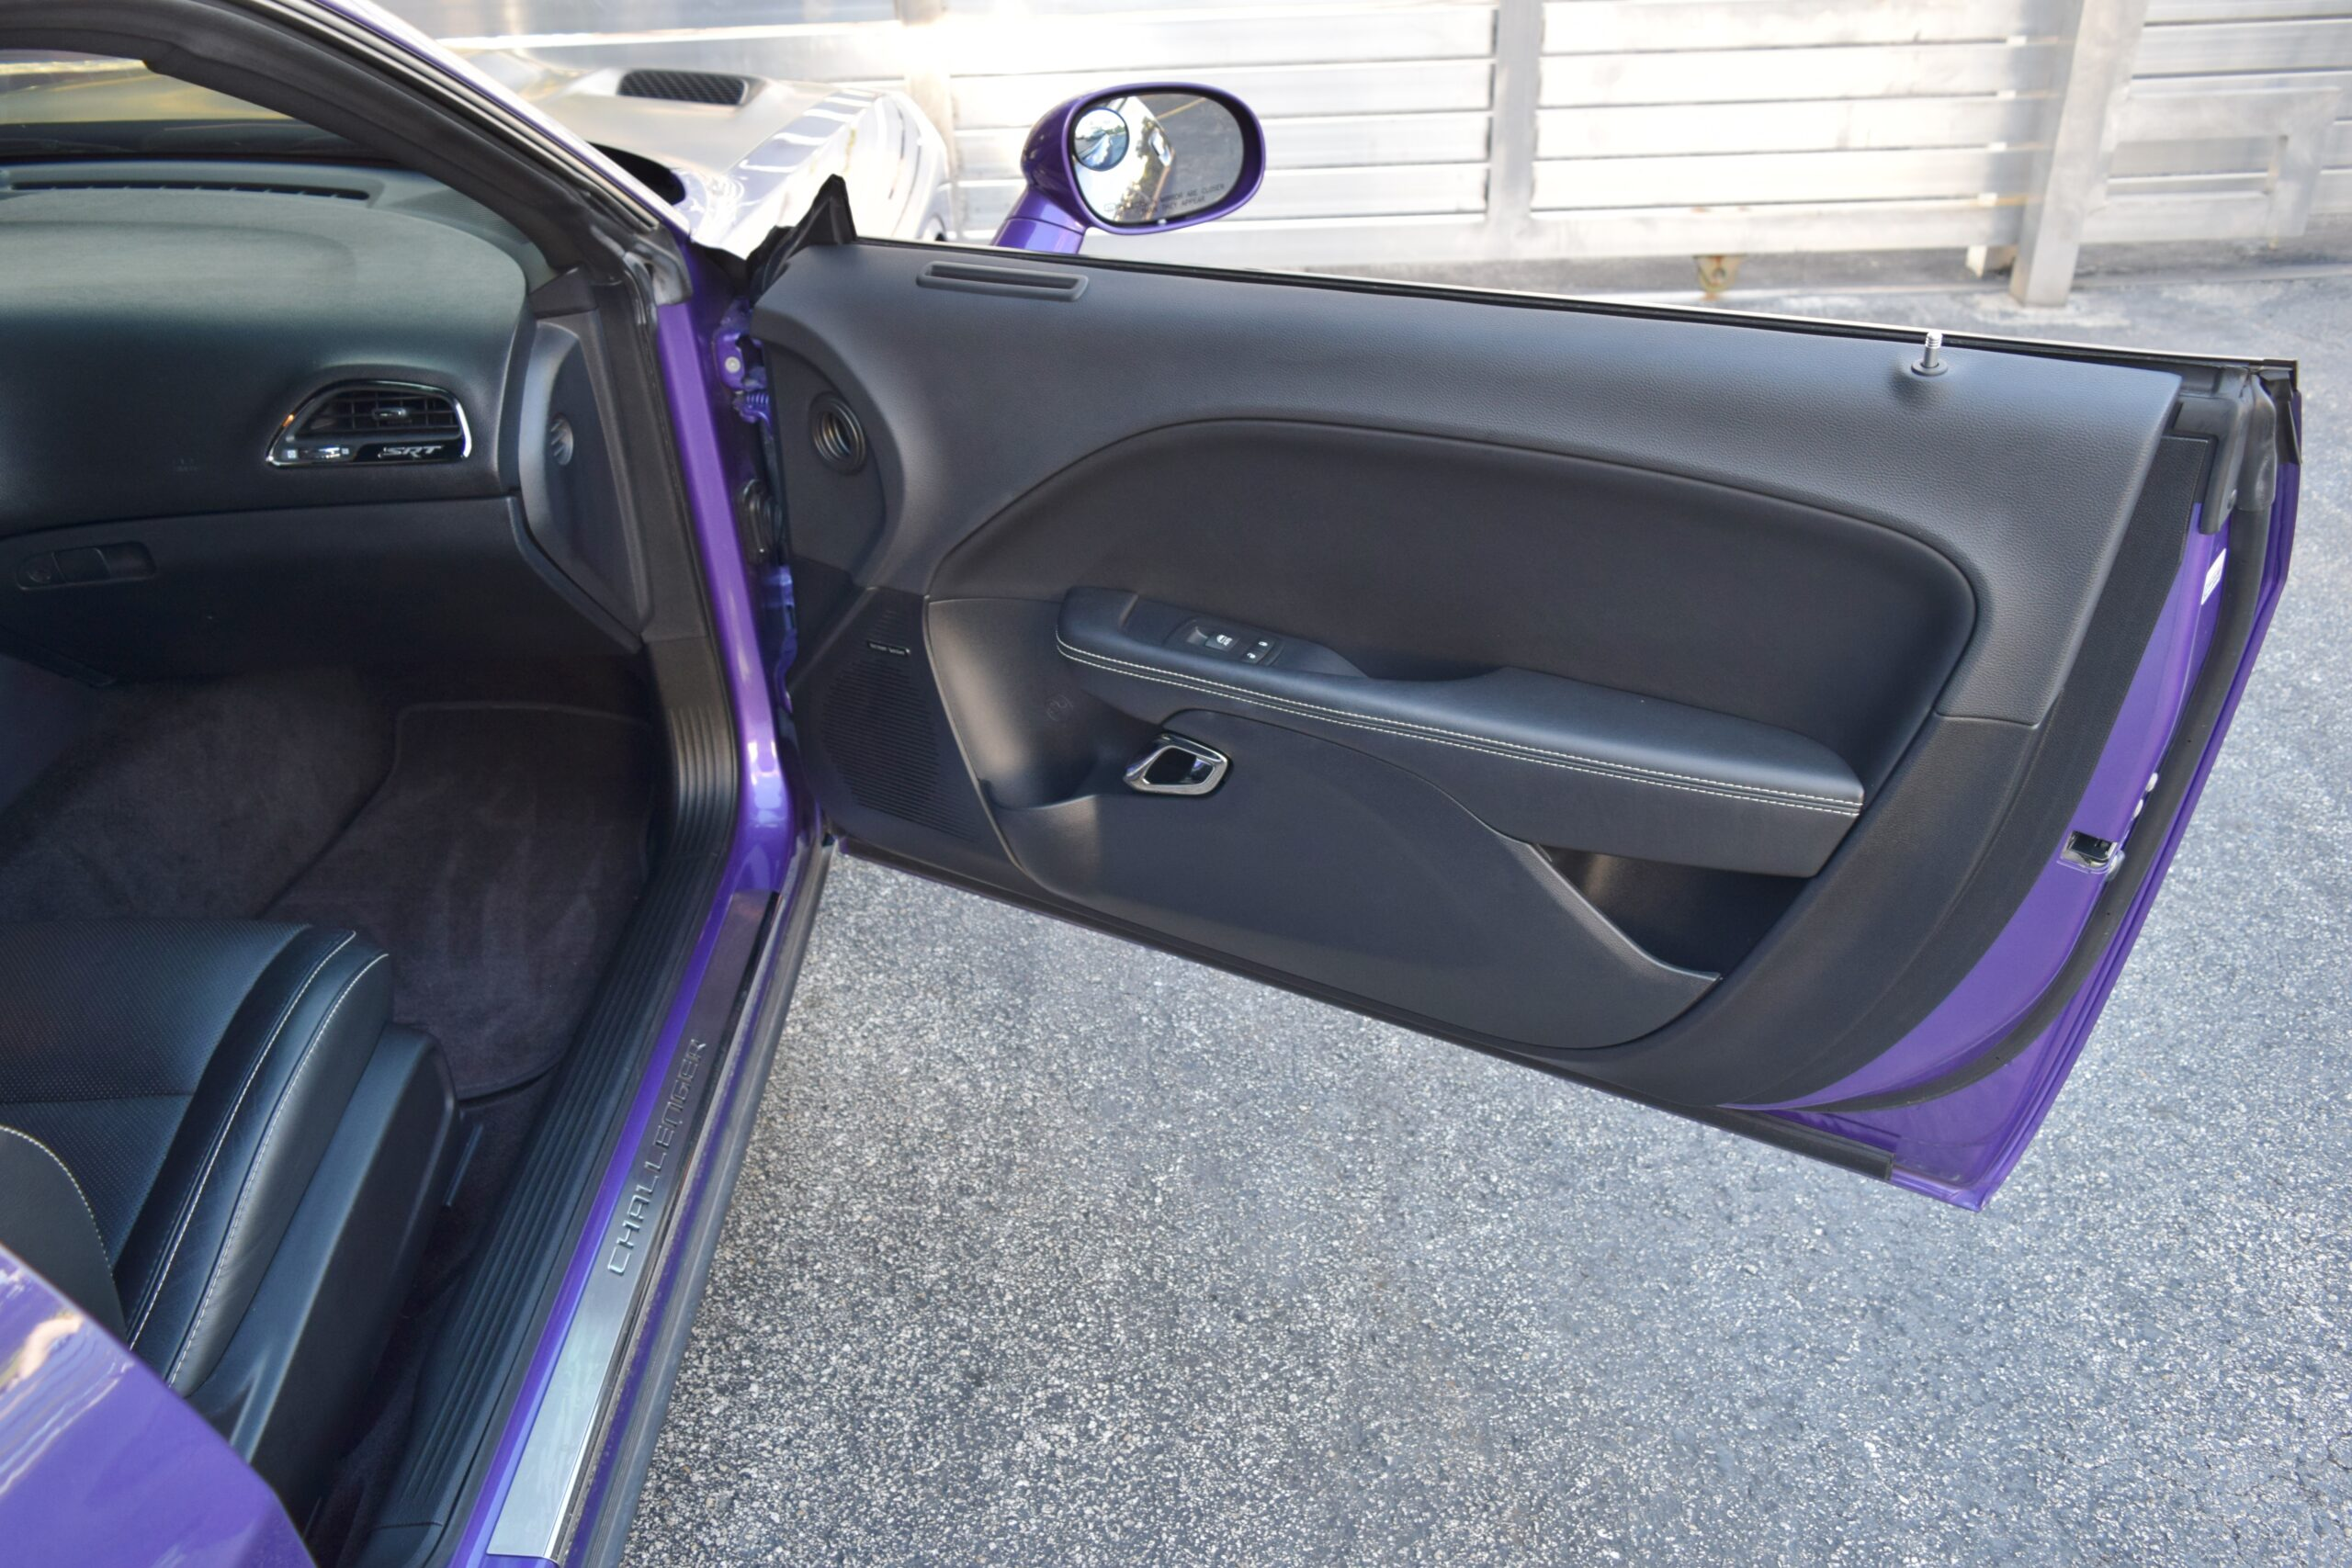 2016 Dodge Challenger SRT HELLCAT Supercharged HEMI ONLY 14K MILES! Plum Crazy Pearl- Corsa Exhaust – FULLY LOADED -HEMI 26R Package